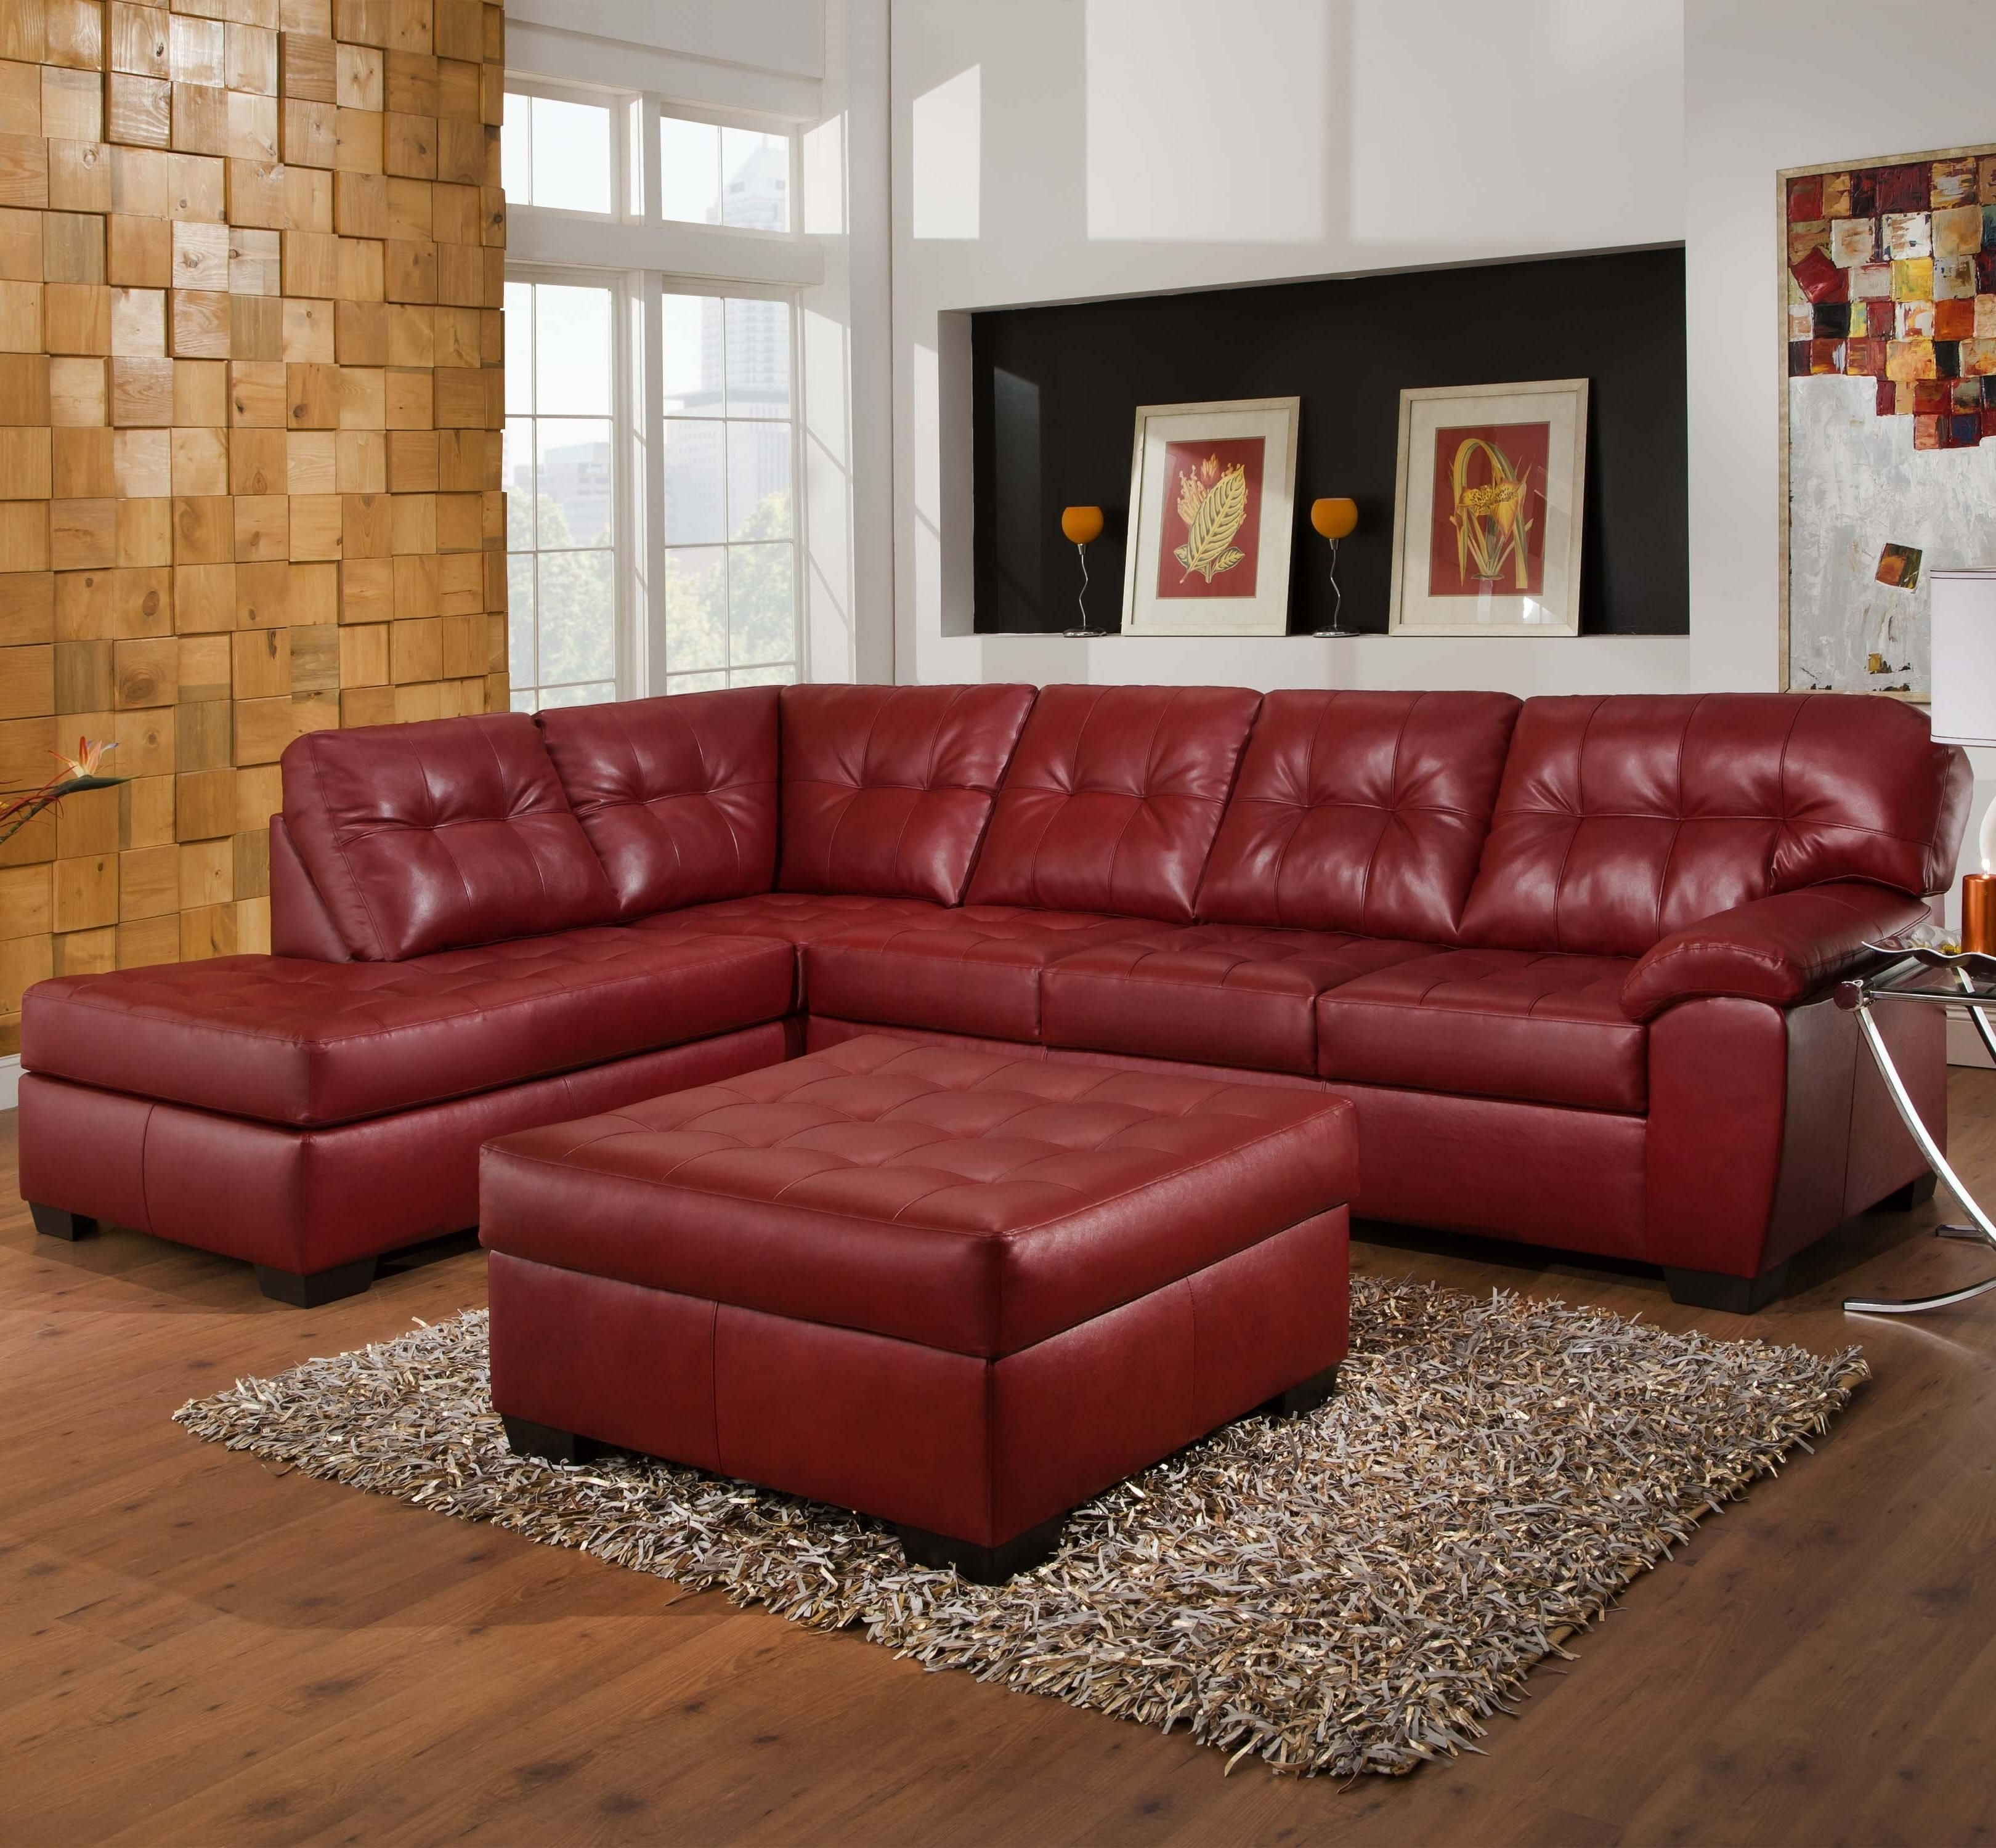 Recent Jackson Ms Sectional Sofas Inside 9569 2 Piece Sectional With Tufted Seats & Backsimmons (View 15 of 15)